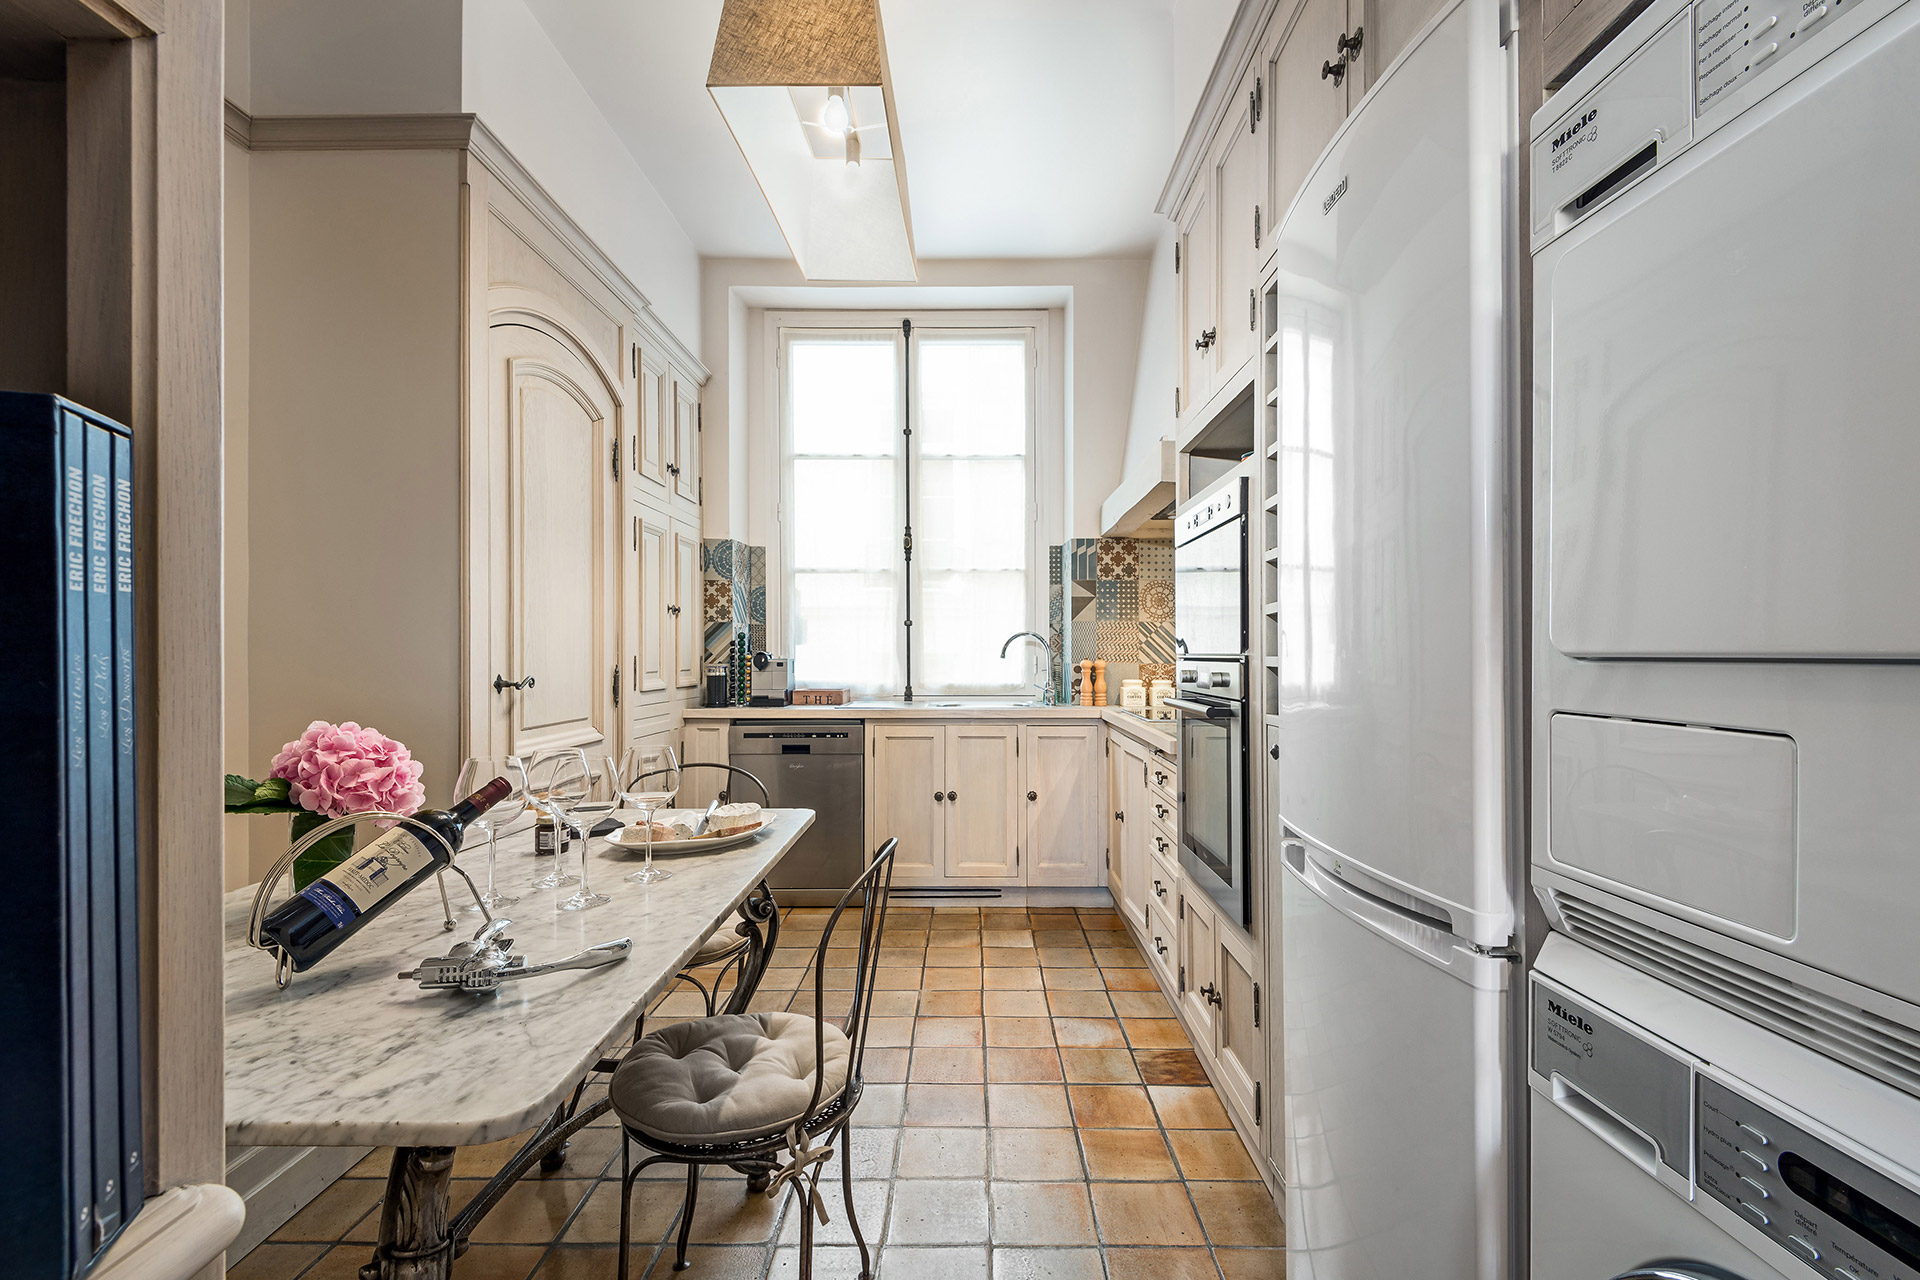 Fully equipped for your culinary needs in the kitchen of the Chopine vacation rental offered by Paris Perfect